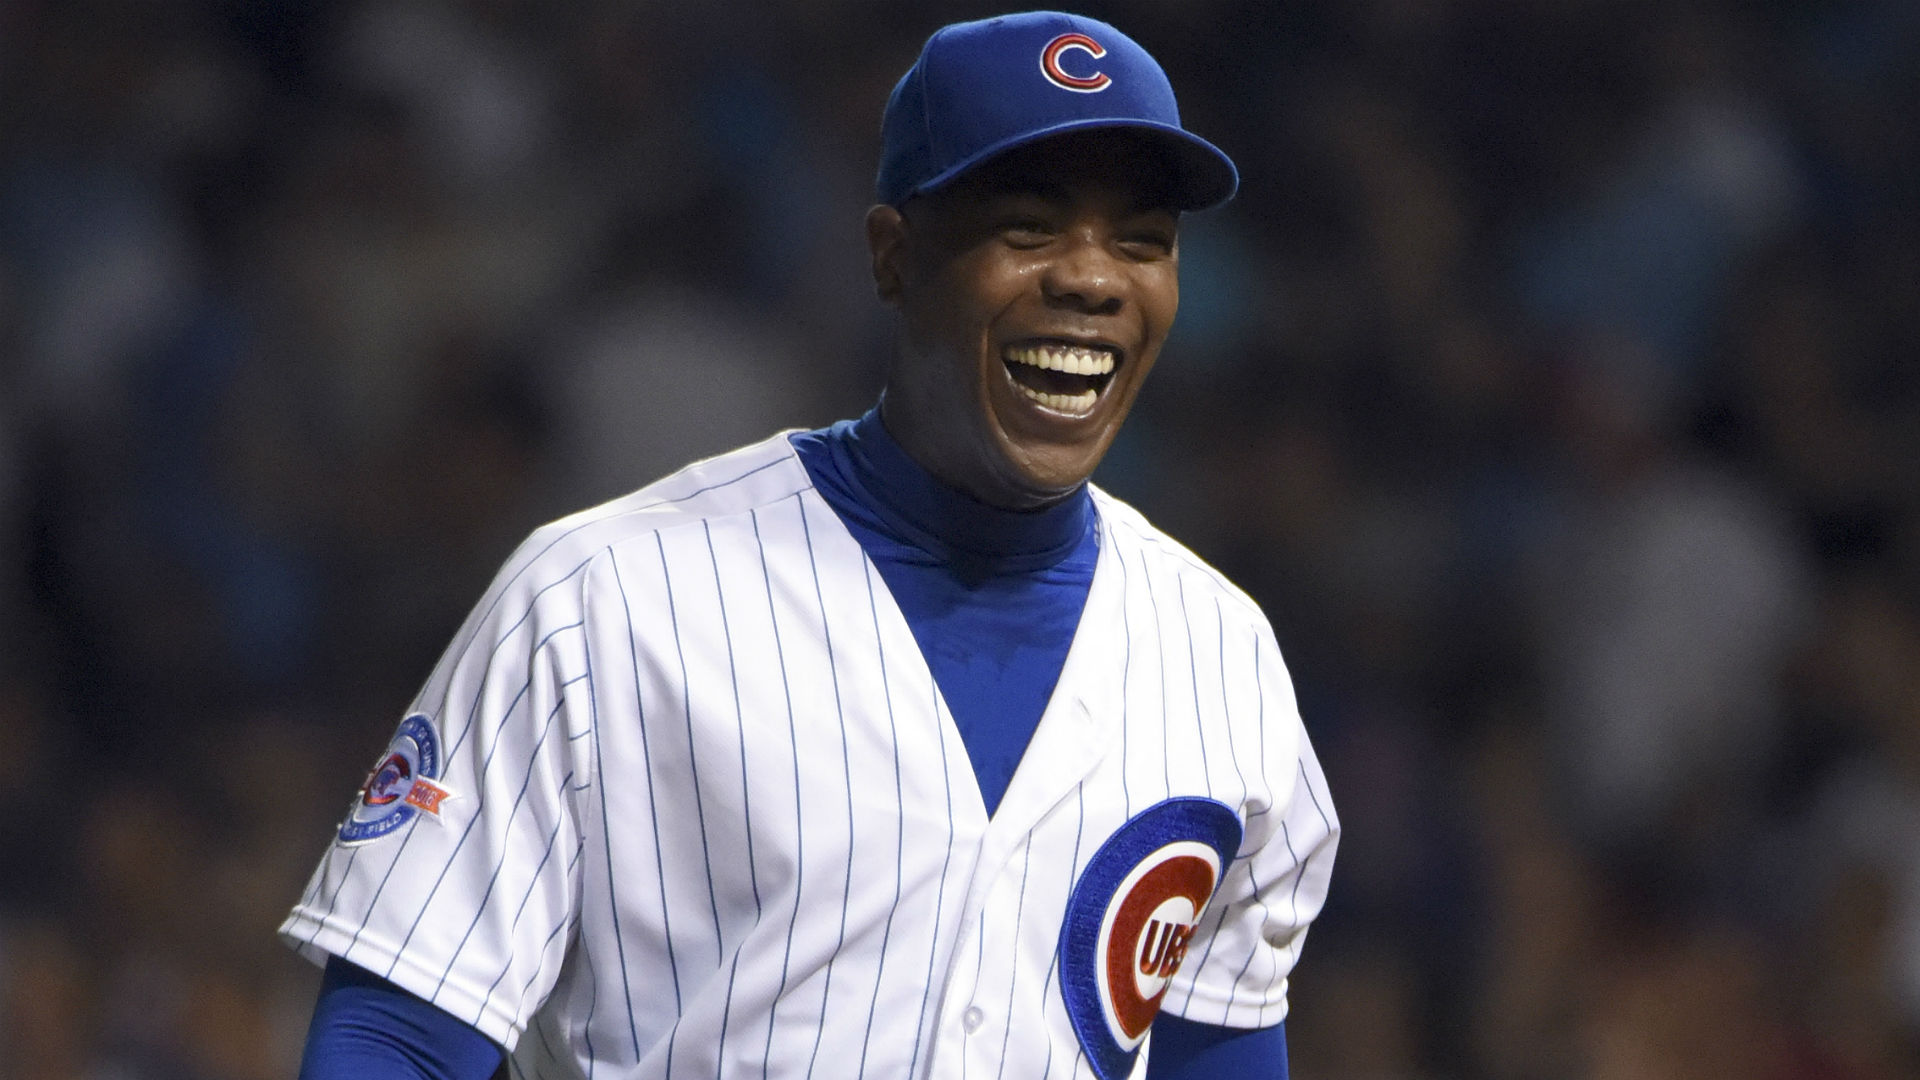 Cubs fire DJ for song preaching violence